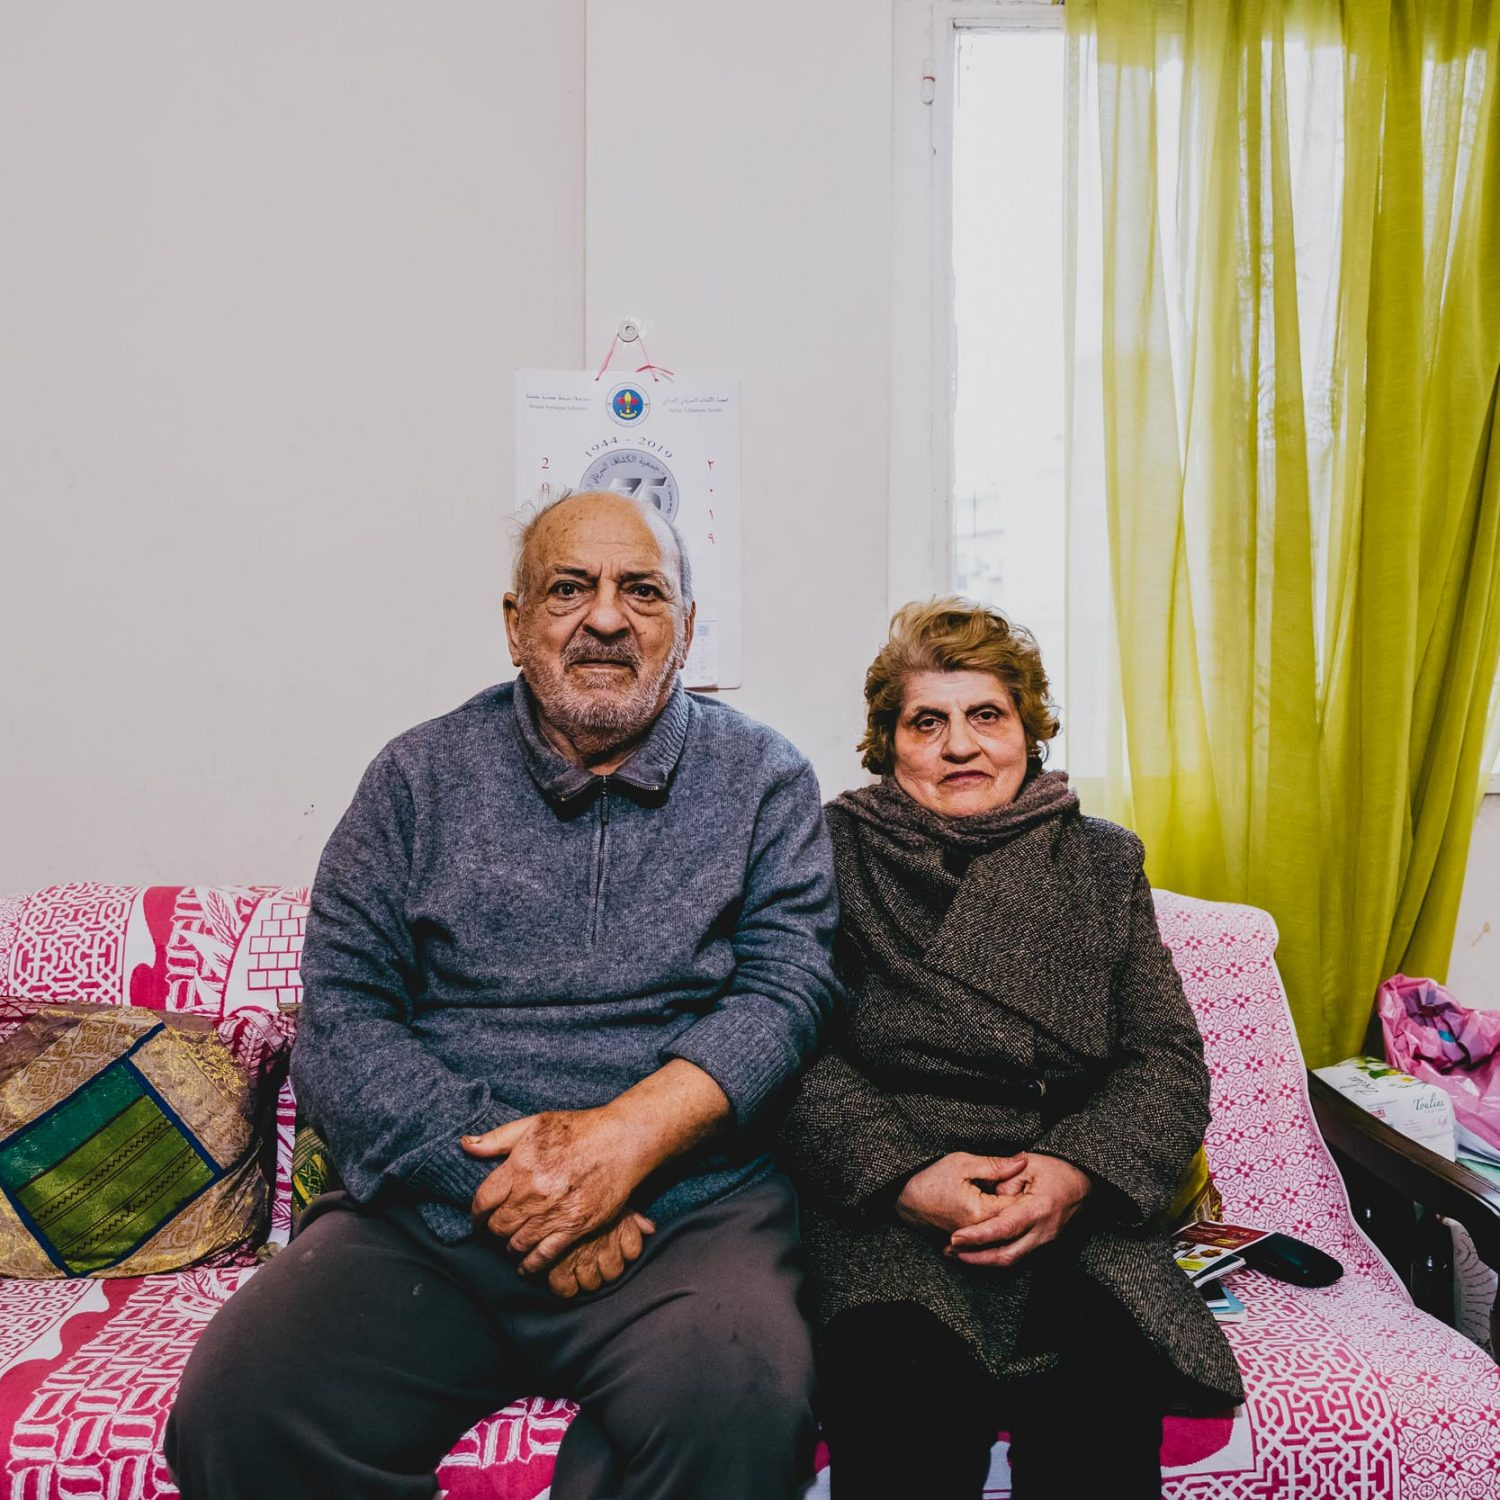 THE DAUNTING ROUTE OF MANIAL & FANAR, IRAQI CHALDEAN REFUGEES IN LEBANON